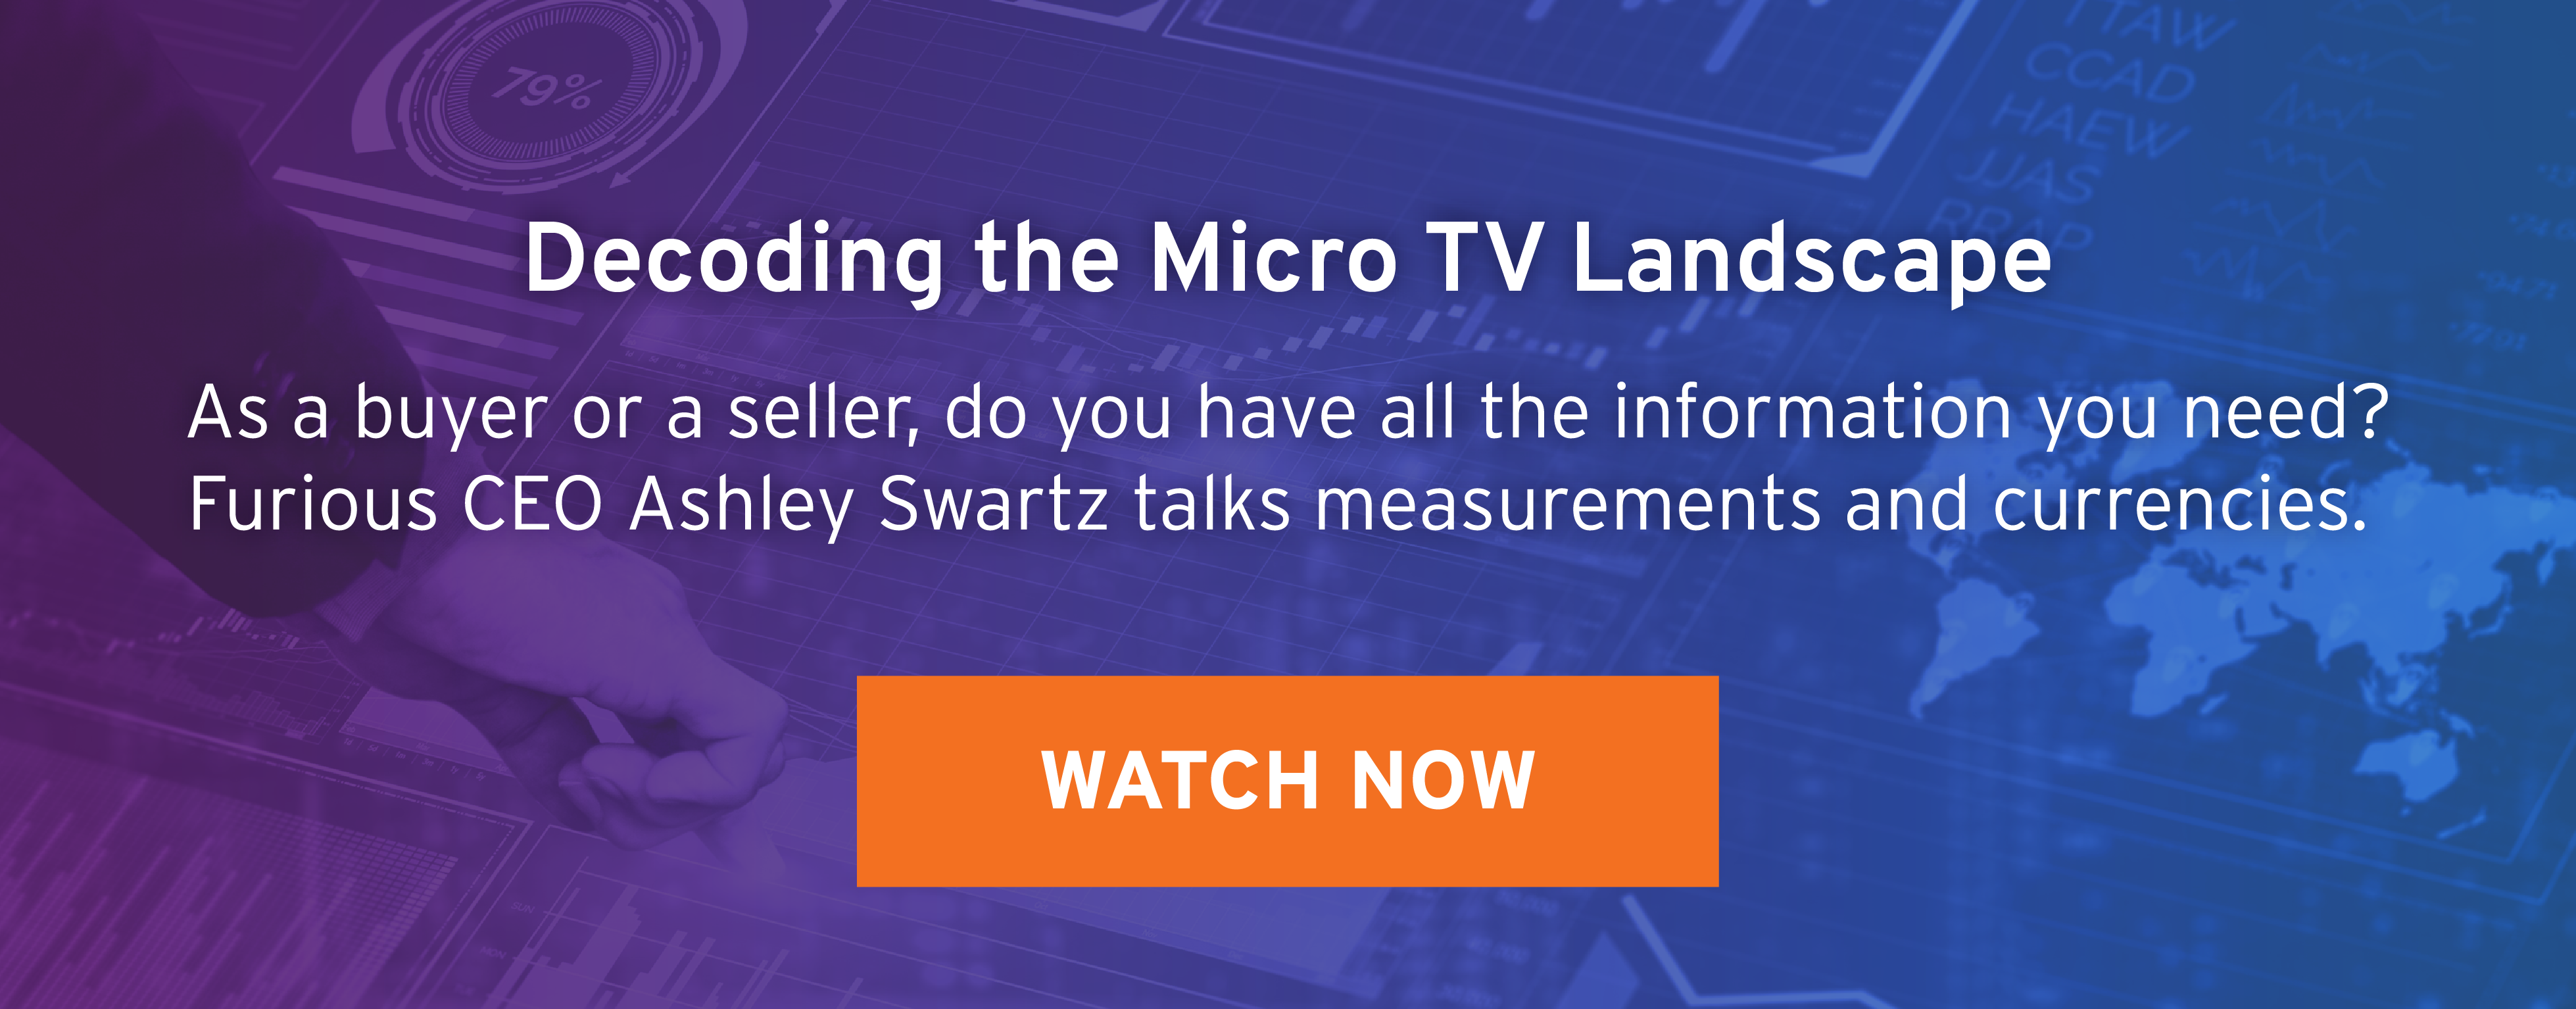 Decoding the Micro TV Landscape